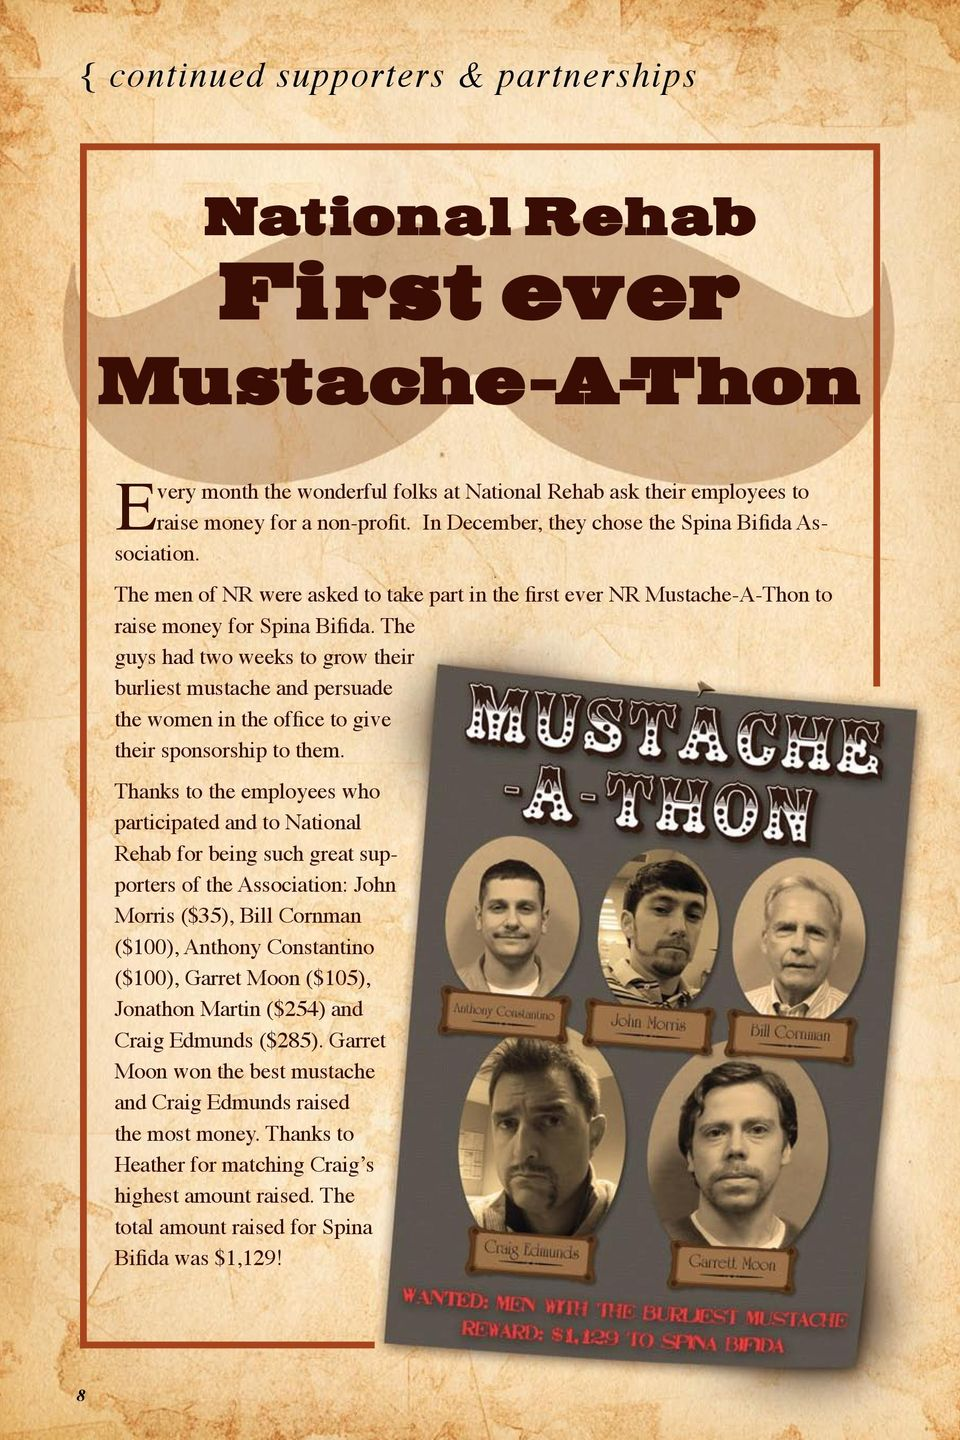 The guys had two weeks to grow their burliest mustache and persuade the women in the office to give their sponsorship to them.